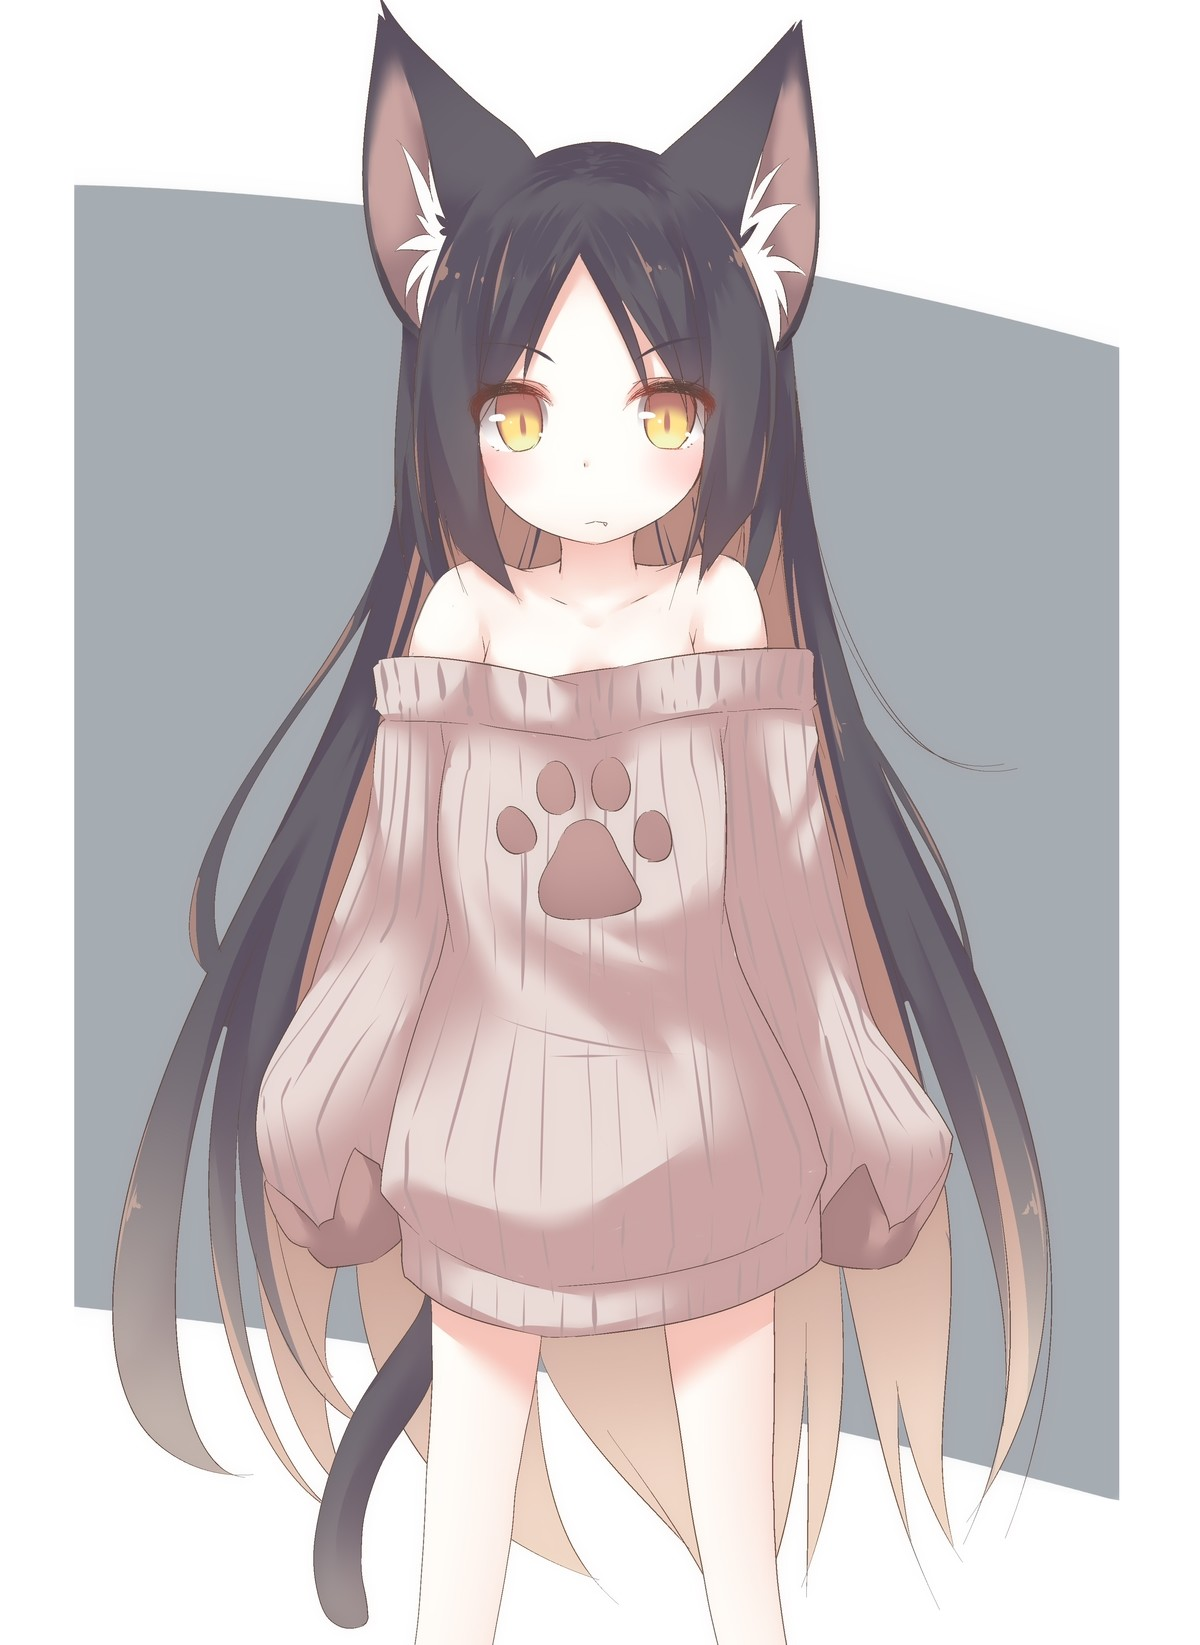 Ear rubs pls. www.pixiv.net/i/74079964.. There is nothing holding that sweater up.